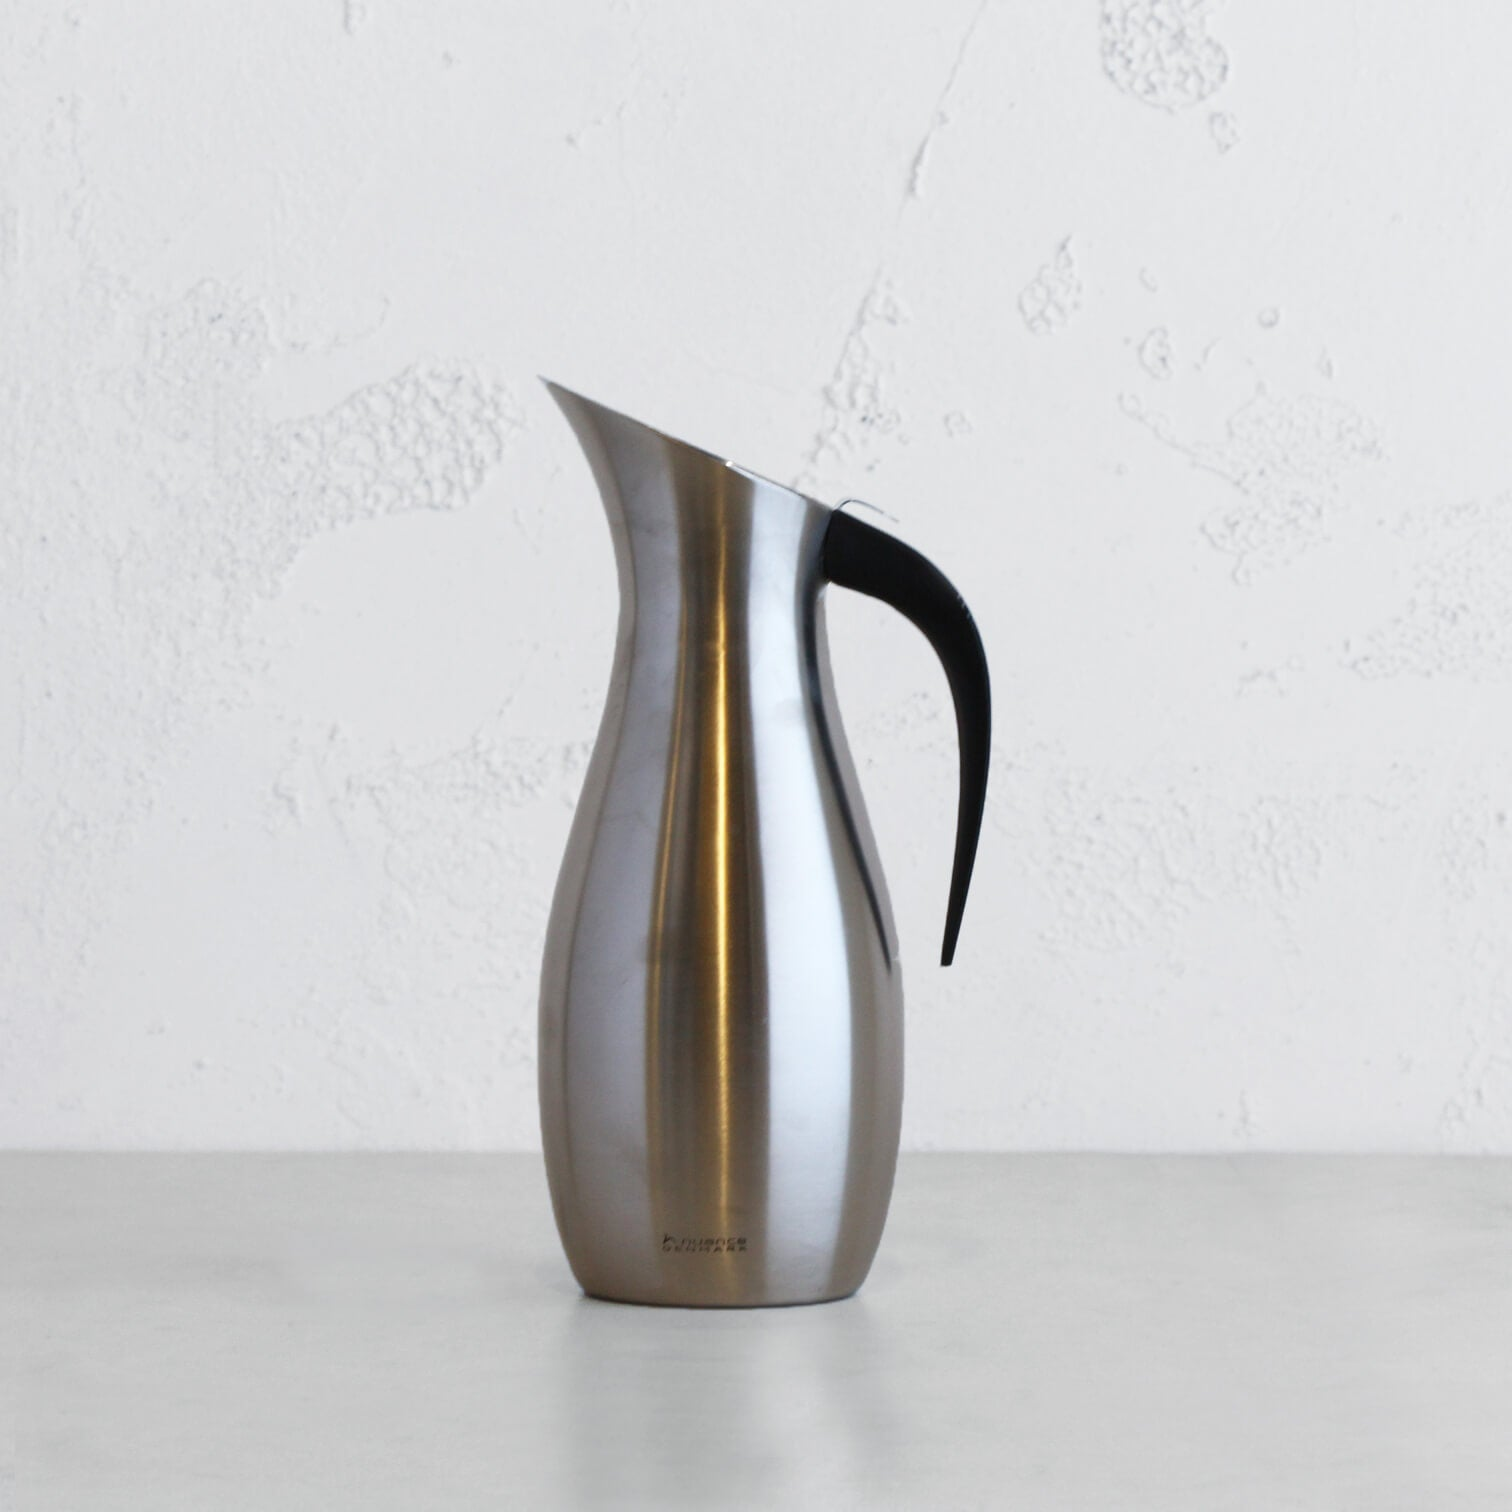 NUANCE WATER JUG | CARAFE STAINLESS STEEL WITH BRUSHED STEEL EXTERIOR